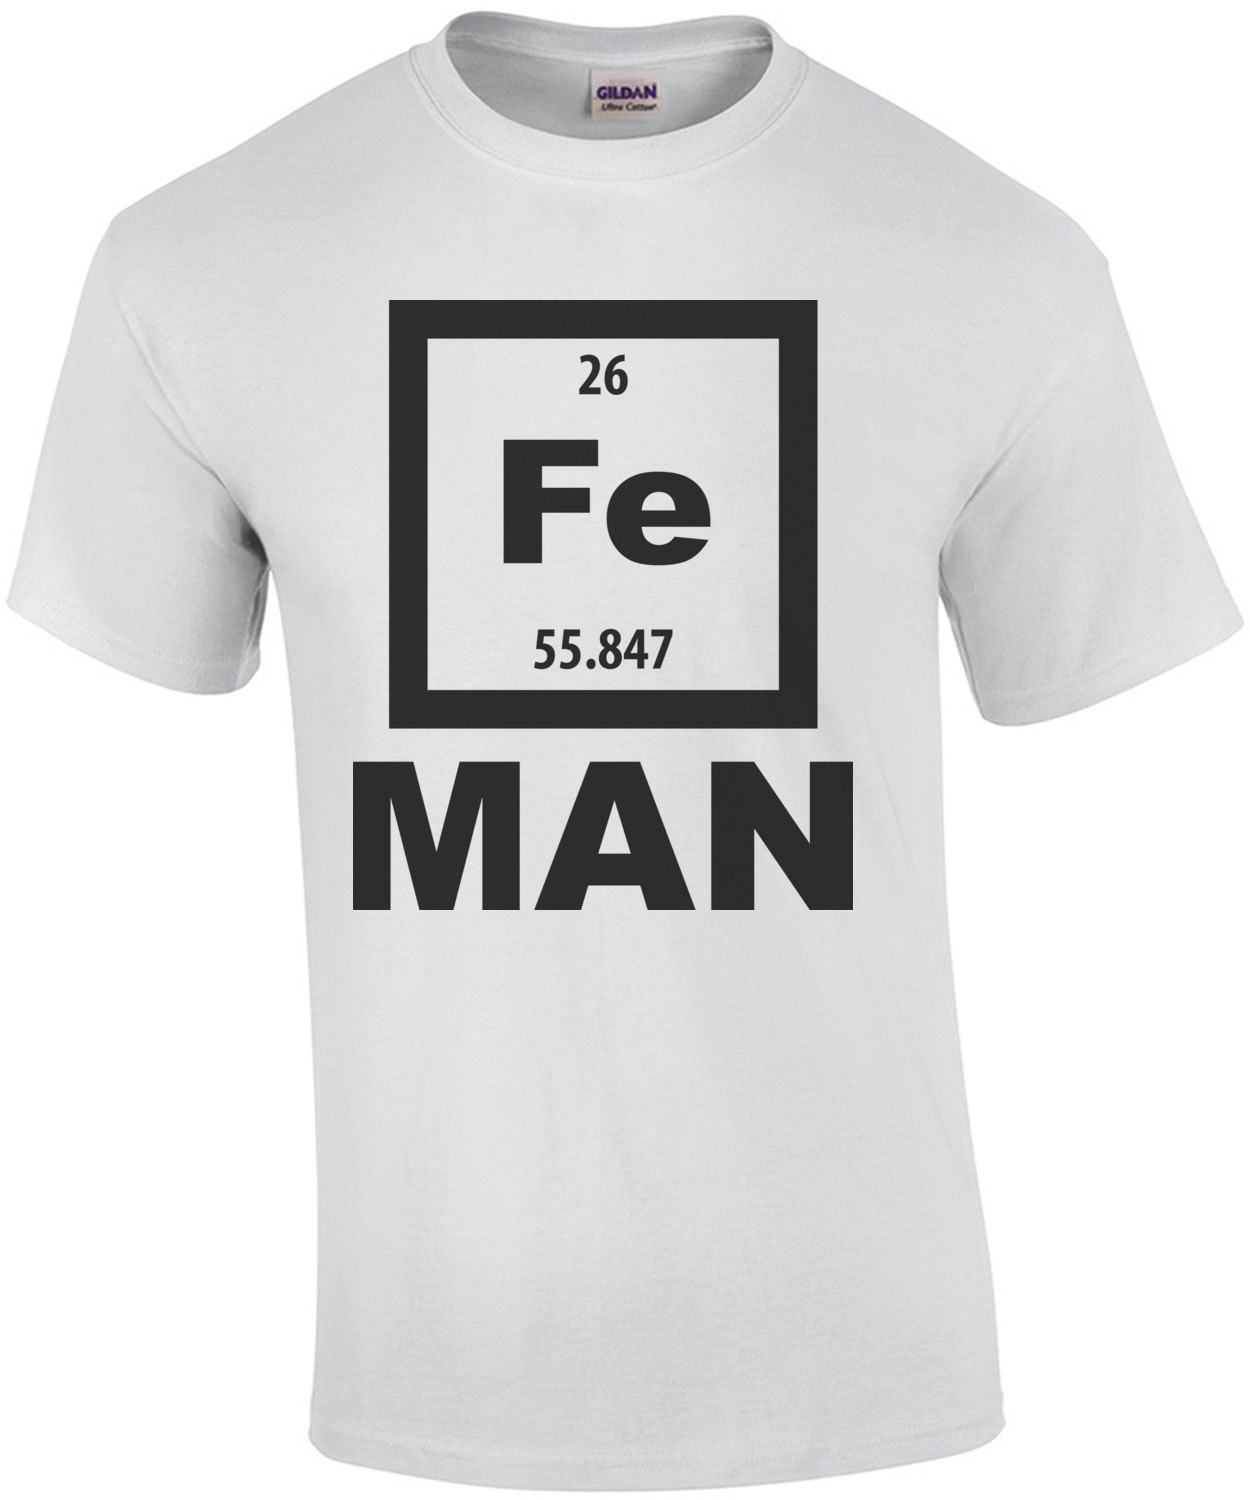 Fe Man - Iron Man - Element periodic table t-shirt